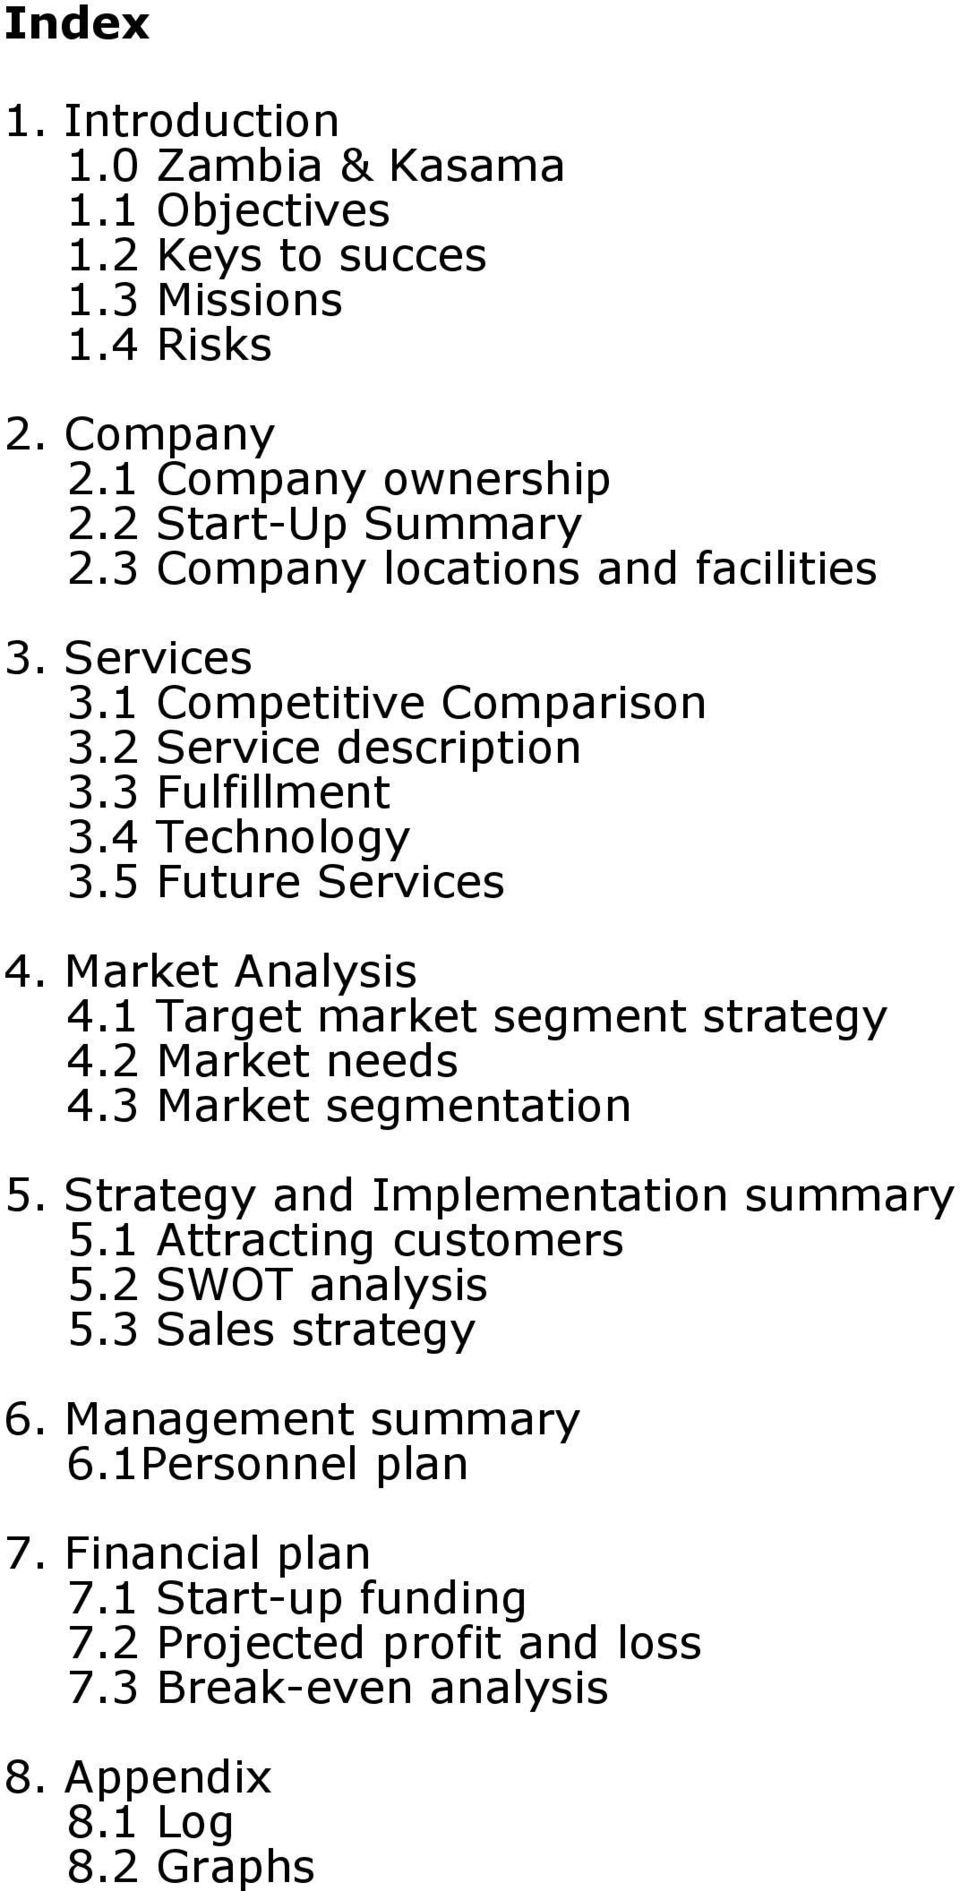 Market Analysis 4.1 Target market segment strategy 4.2 Market needs 4.3 Market segmentation 5. Strategy and Implementation summary 5.1 Attracting customers 5.